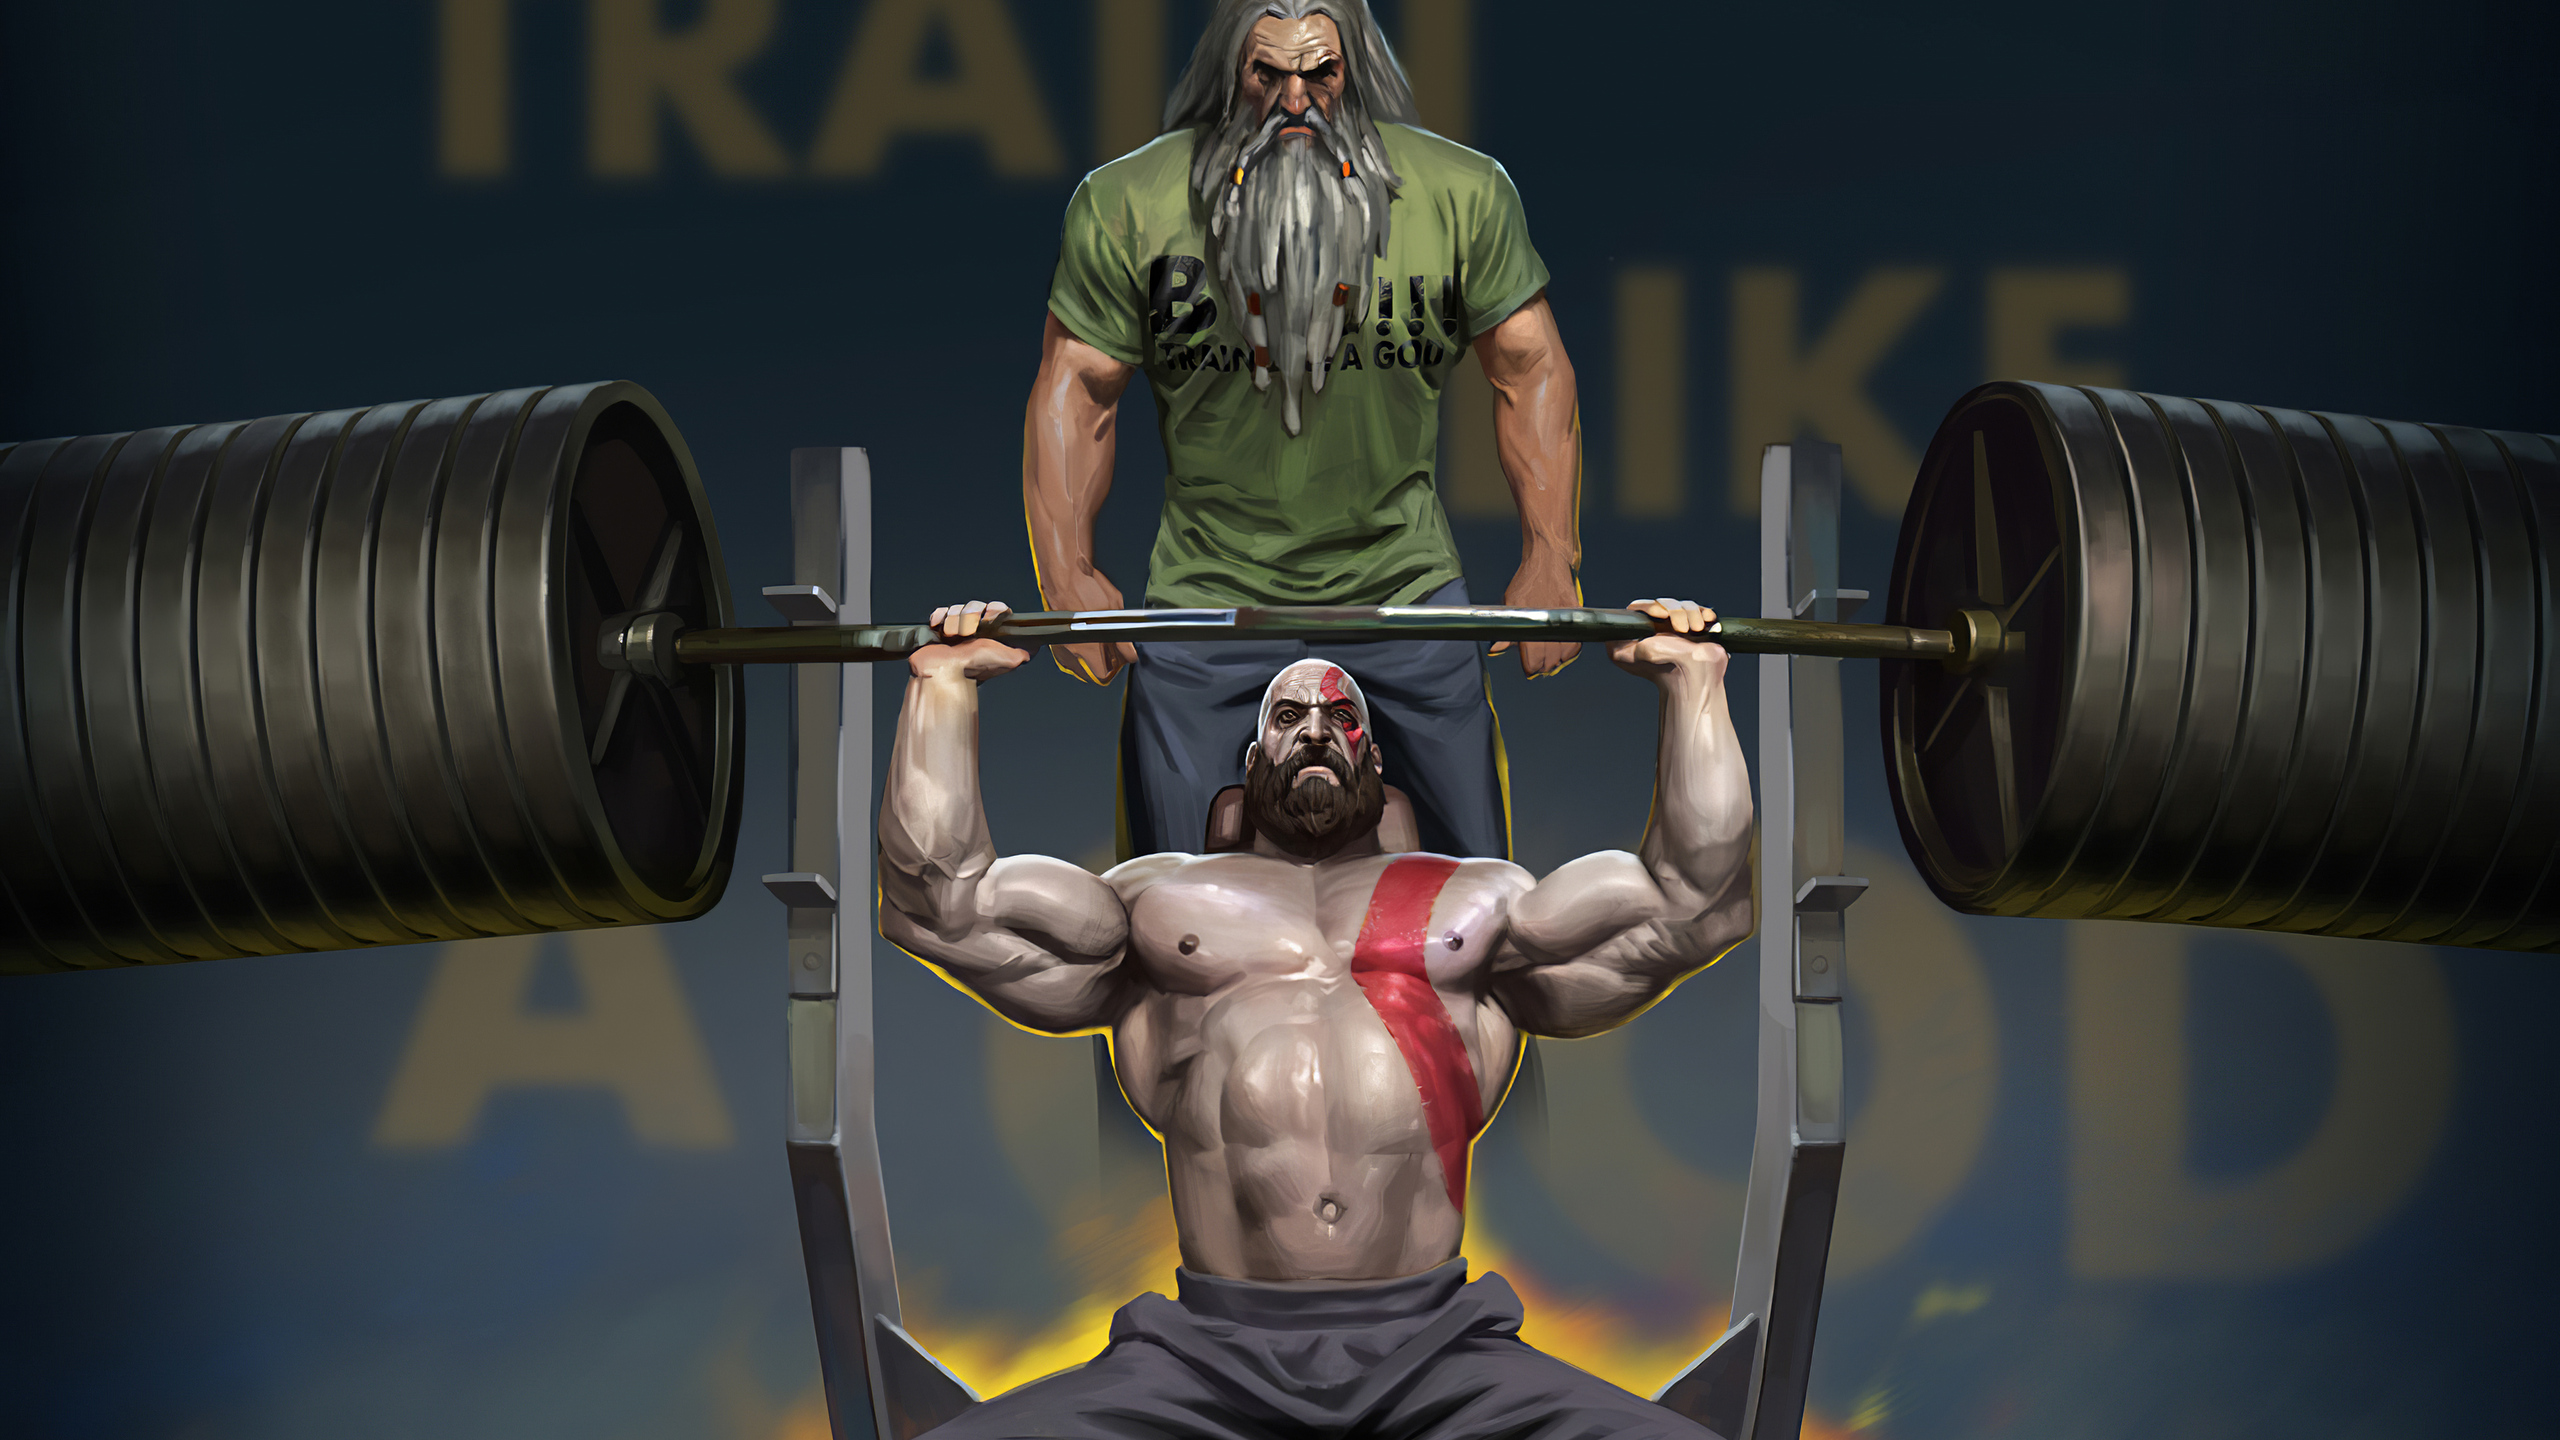 kratos-training-with-father-4k-uu.jpg